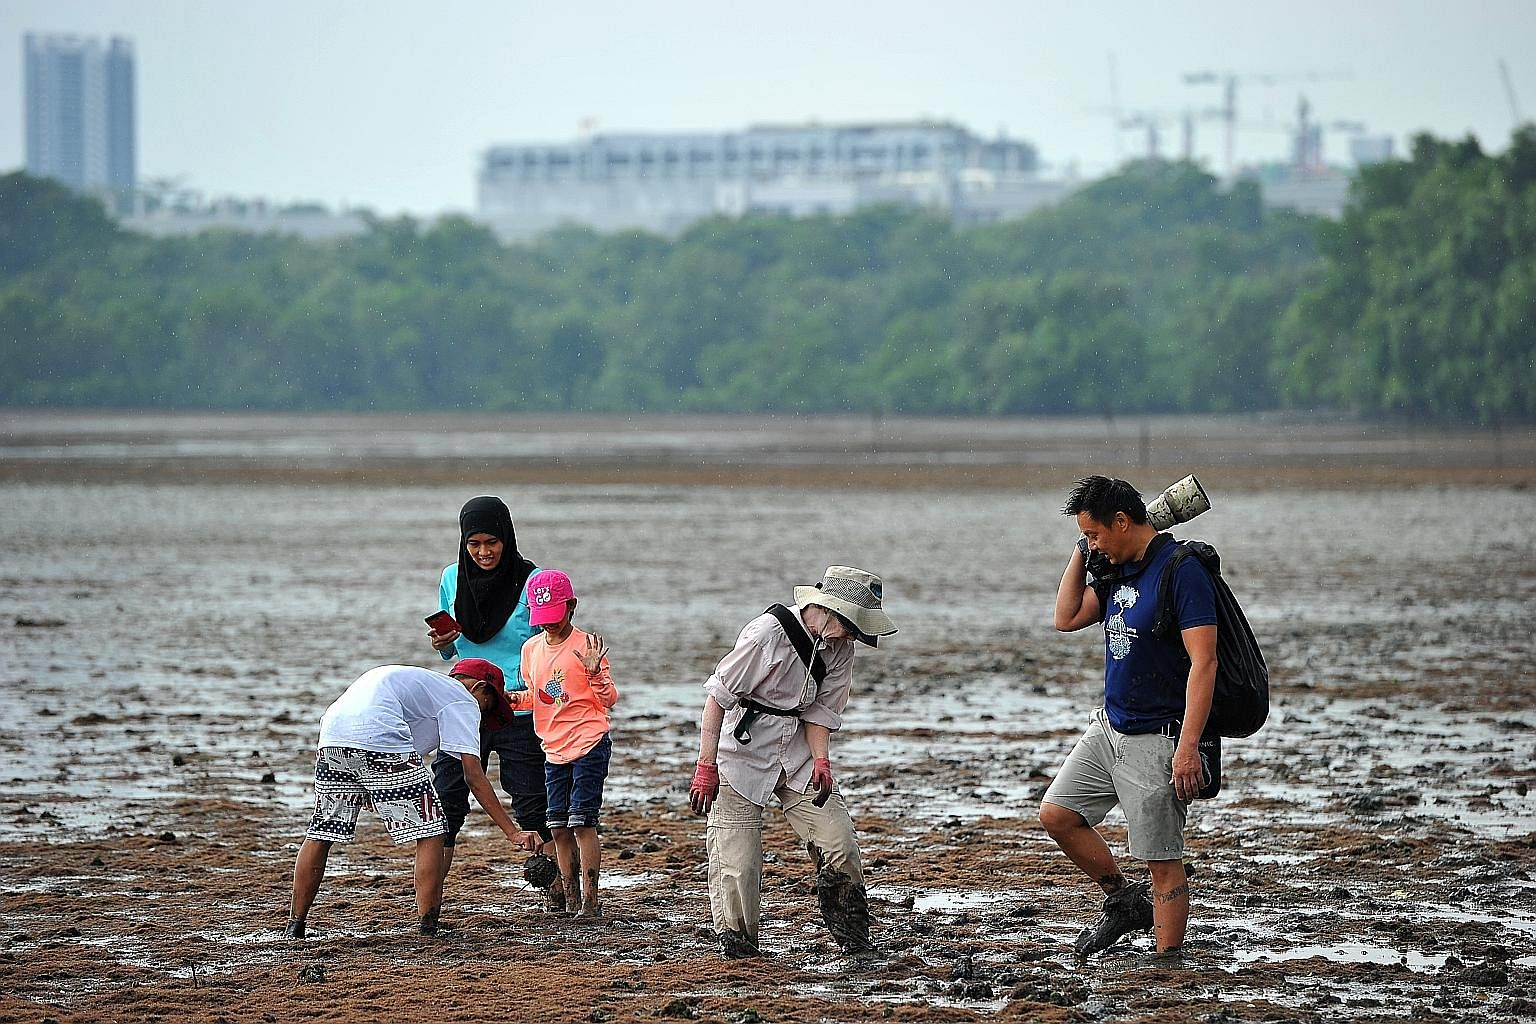 Part of Singapore's climate action plan includes improving coastal protection.